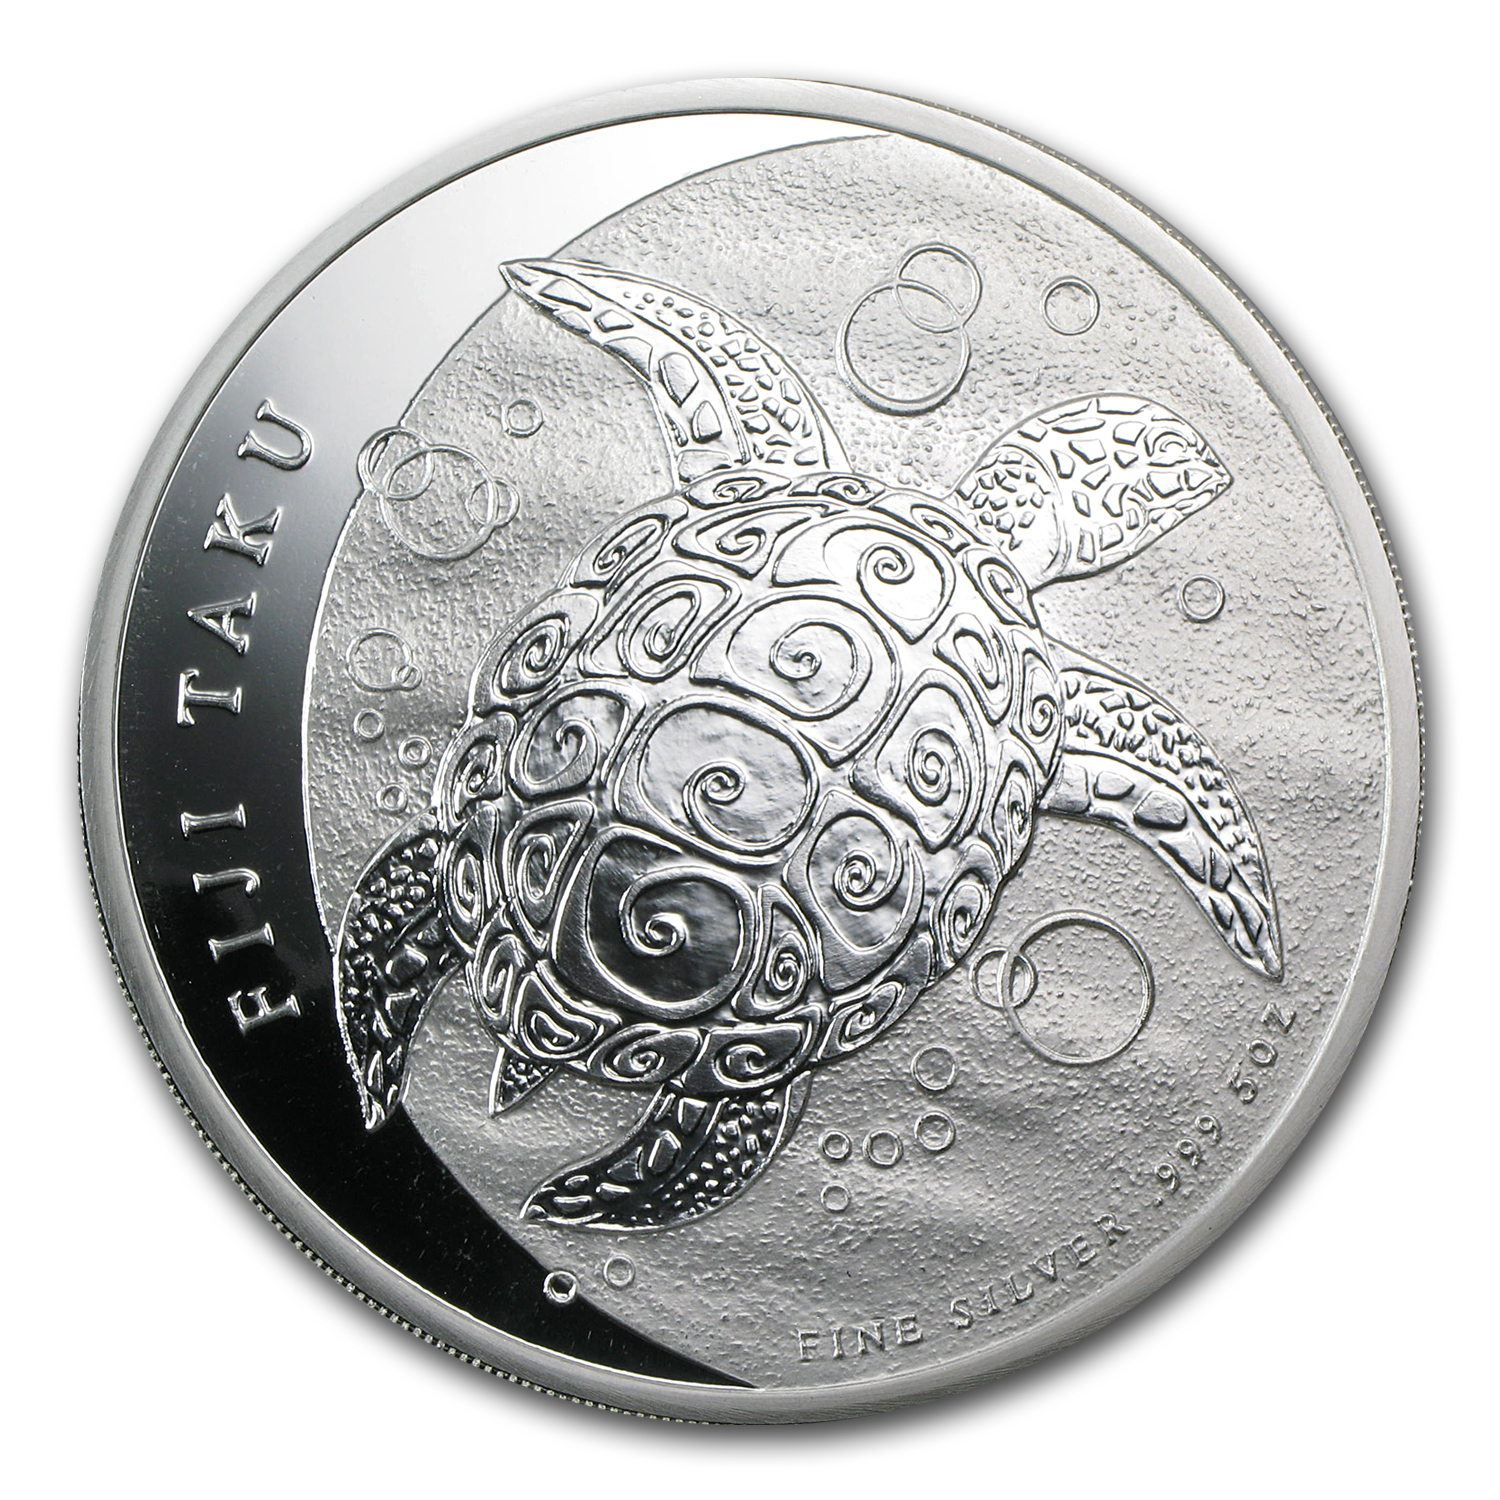 2013 5 oz Silver New Zealand Mint $10 Fiji Taku .999